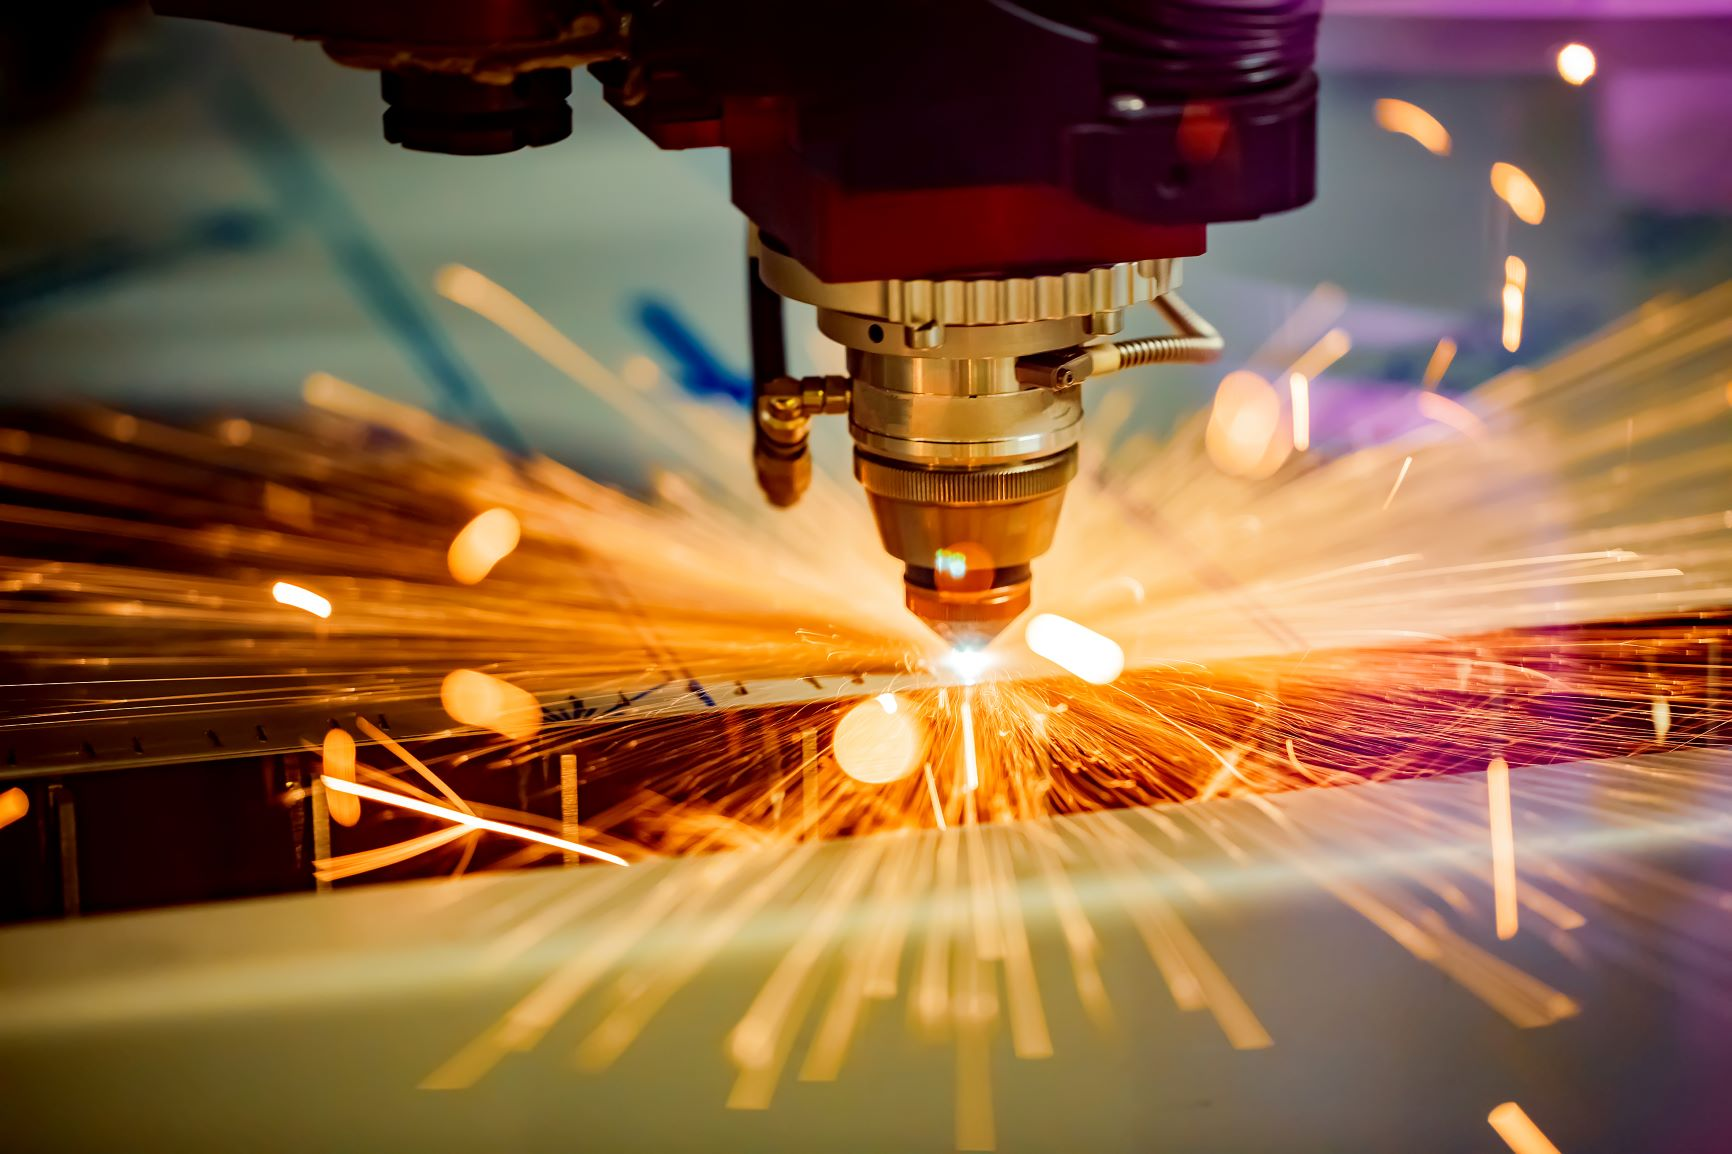 Benefits and industrial manufacturing with laser technology